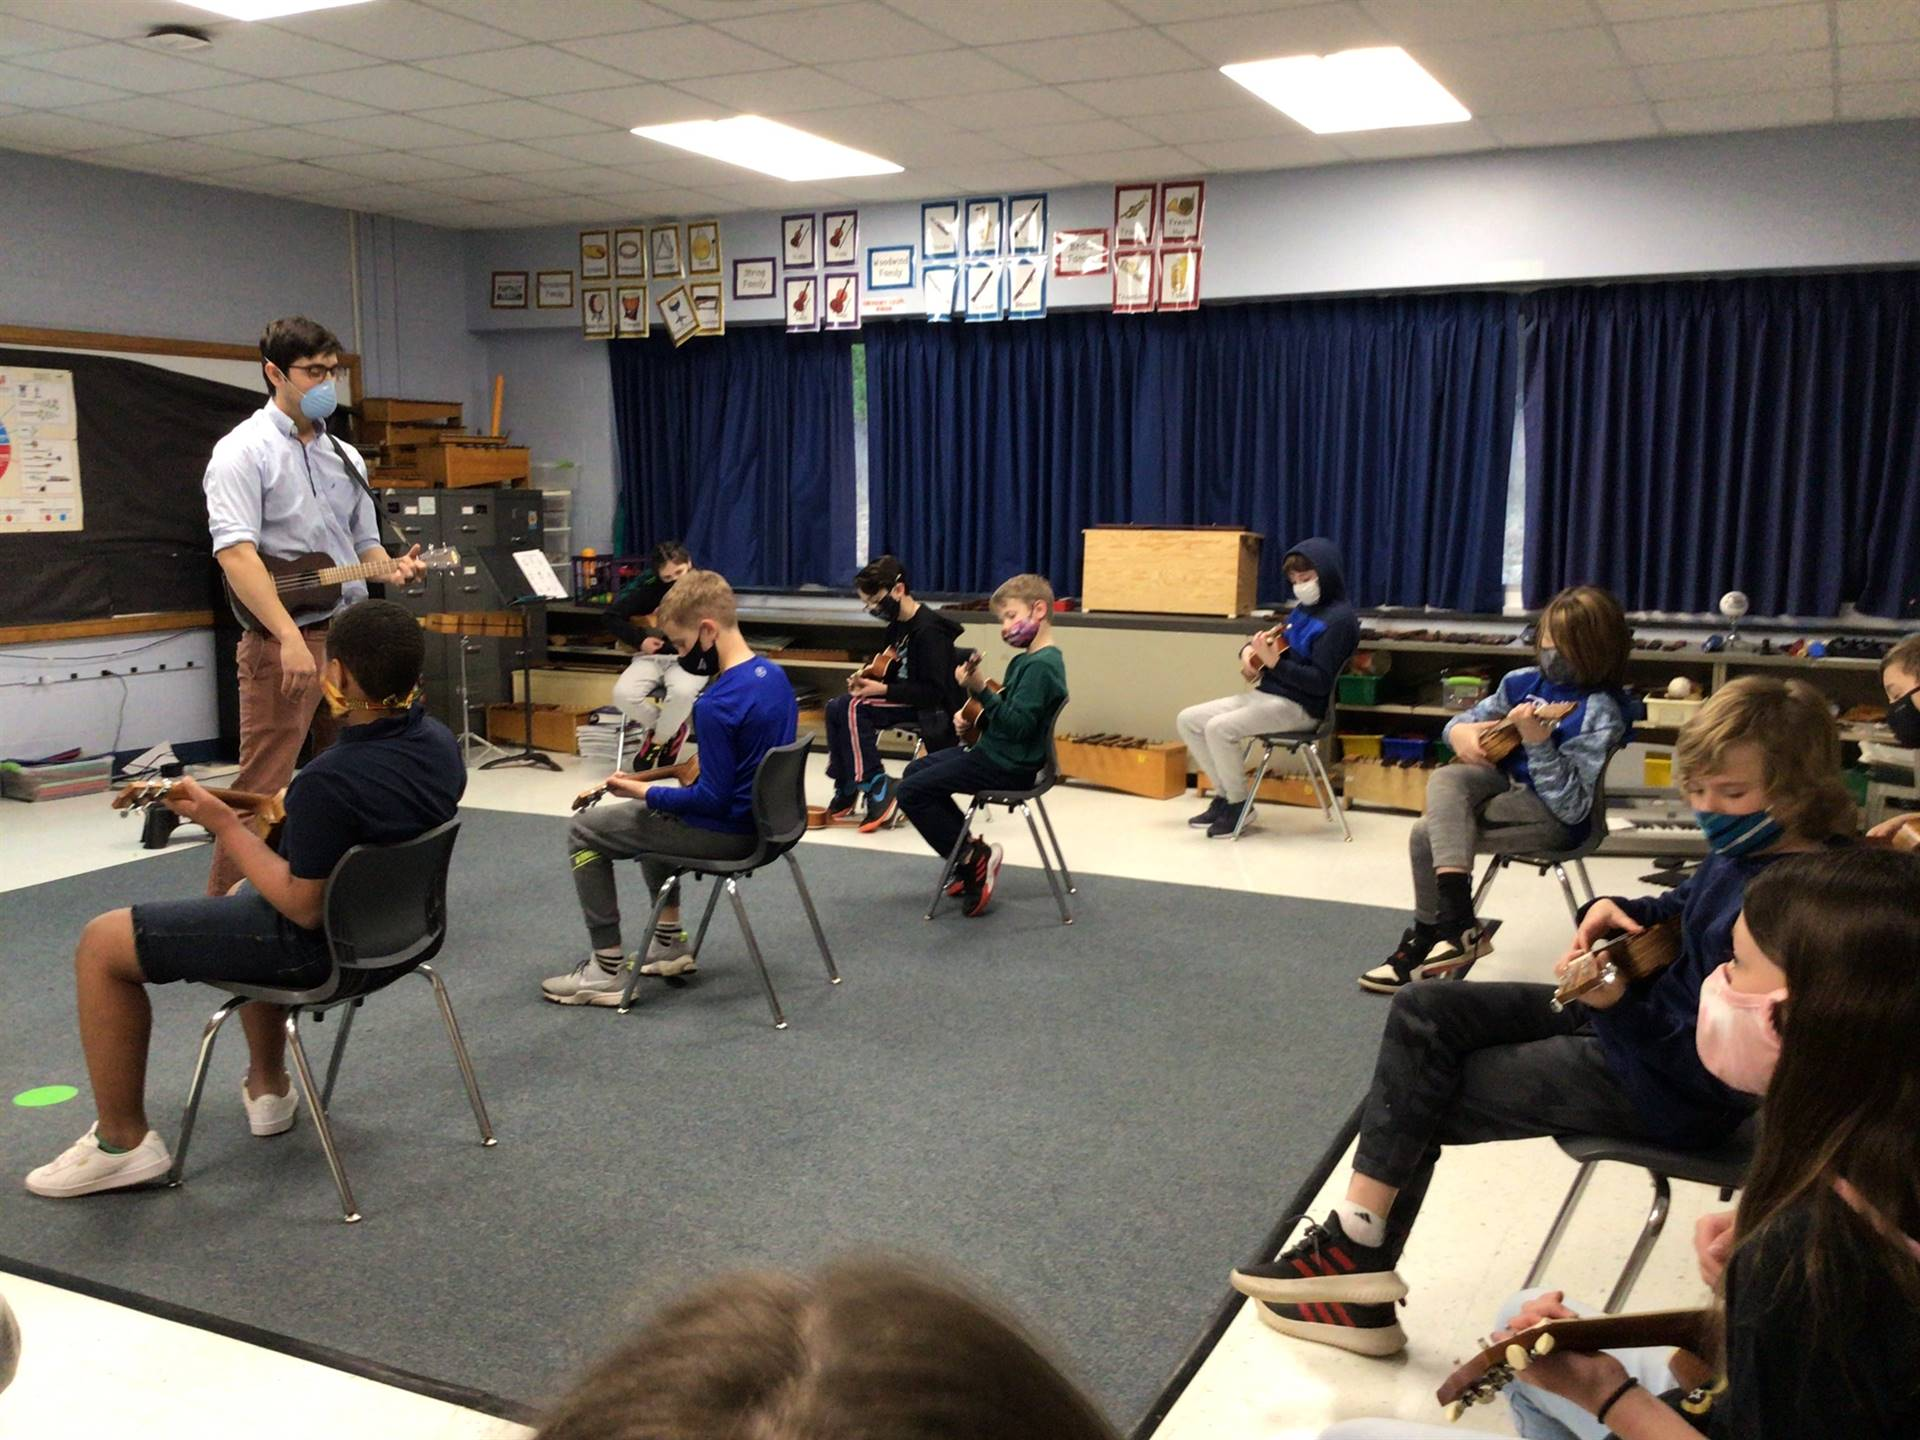 music class with ukeleles